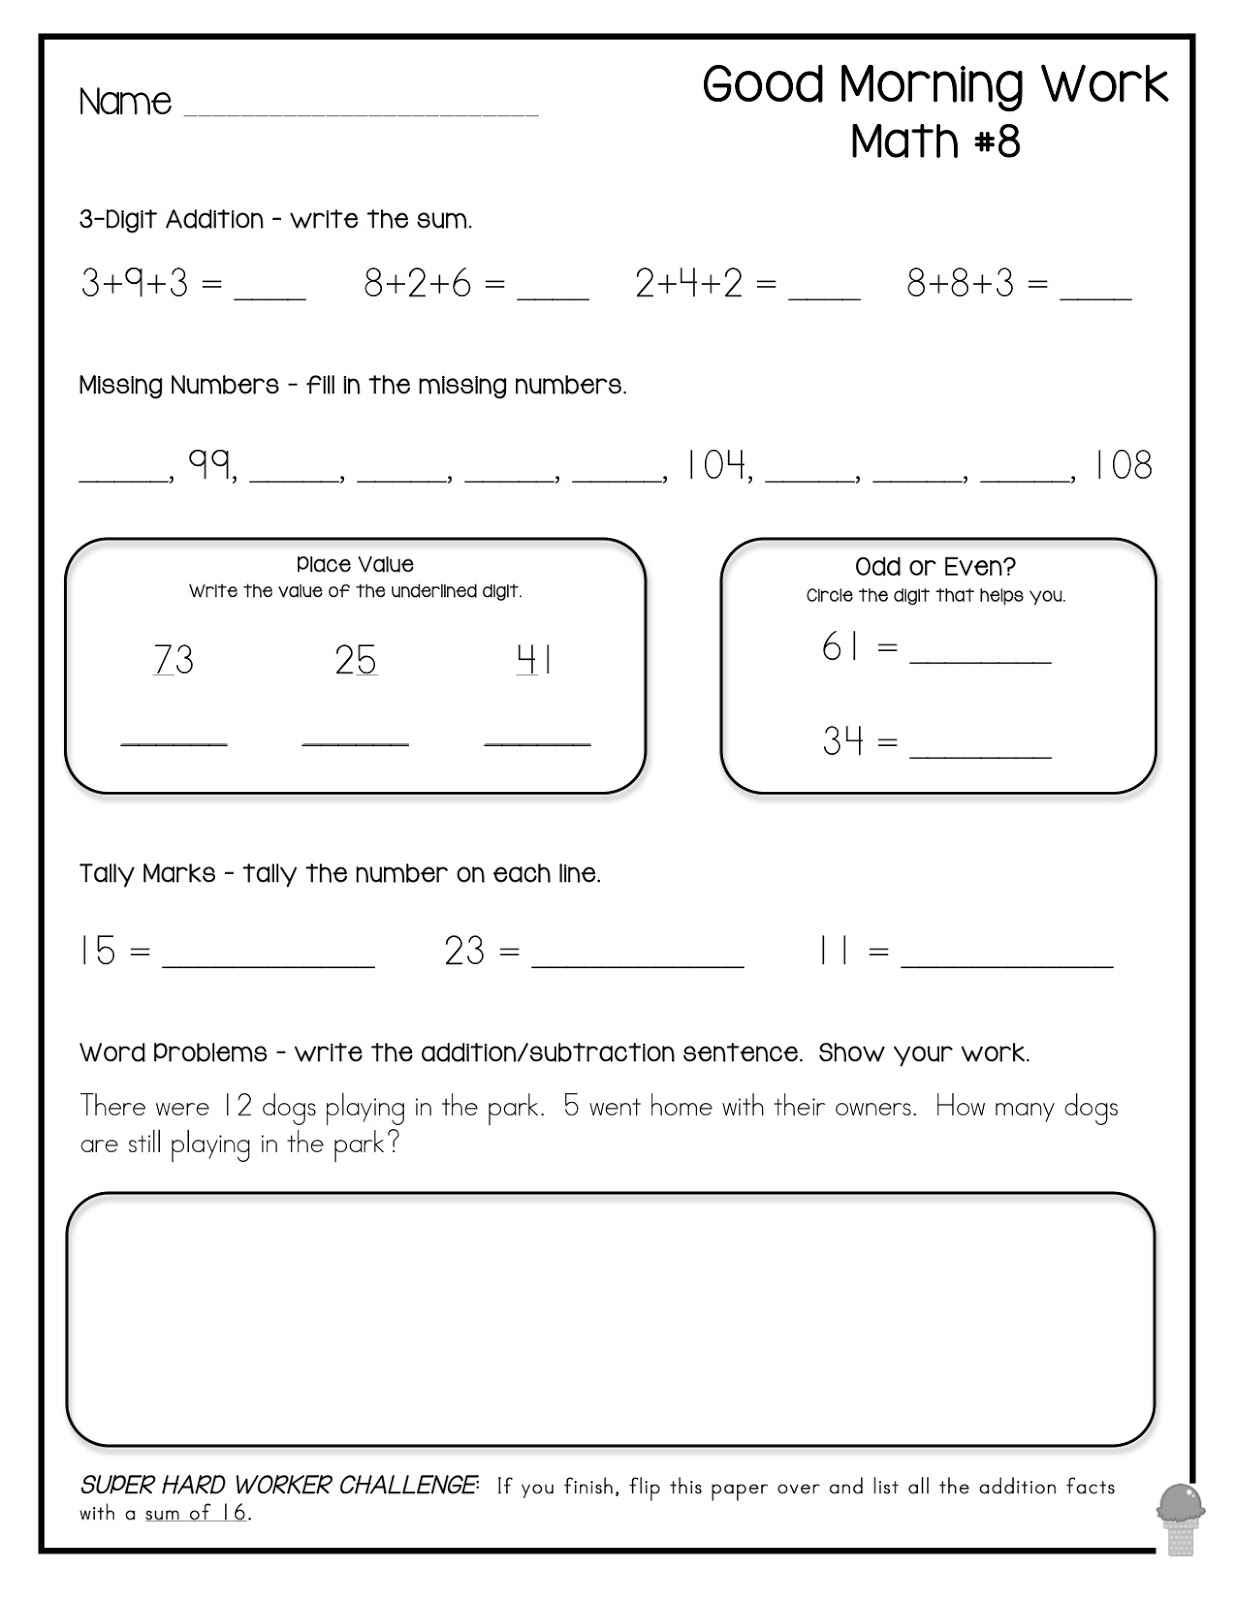 New Horizons 2nd Grade Morning Work Tester